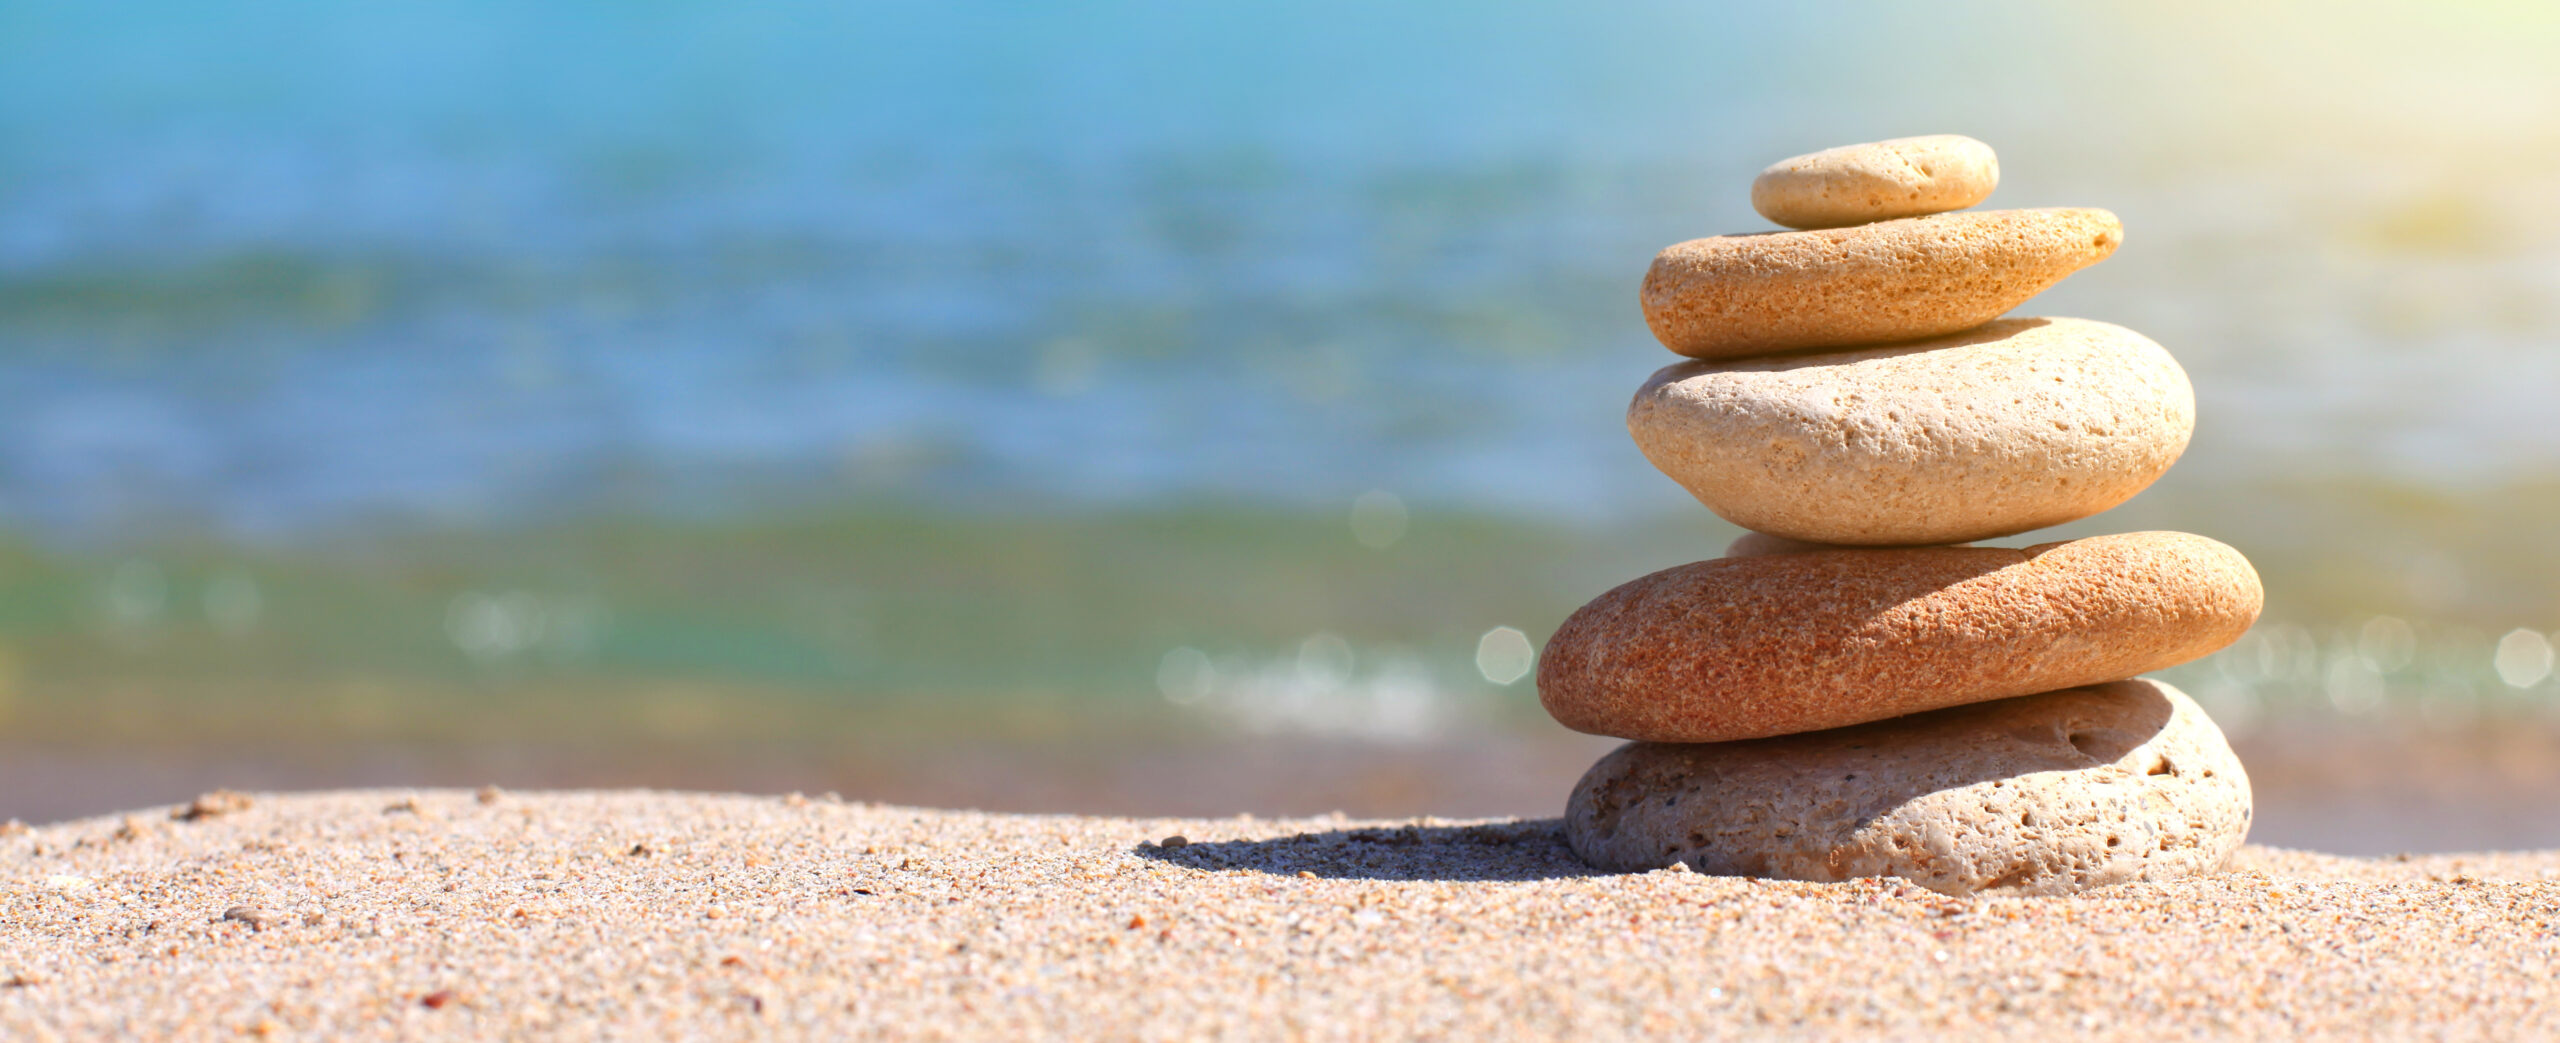 Stack of stones on sand and sea. Horizontal nature background.